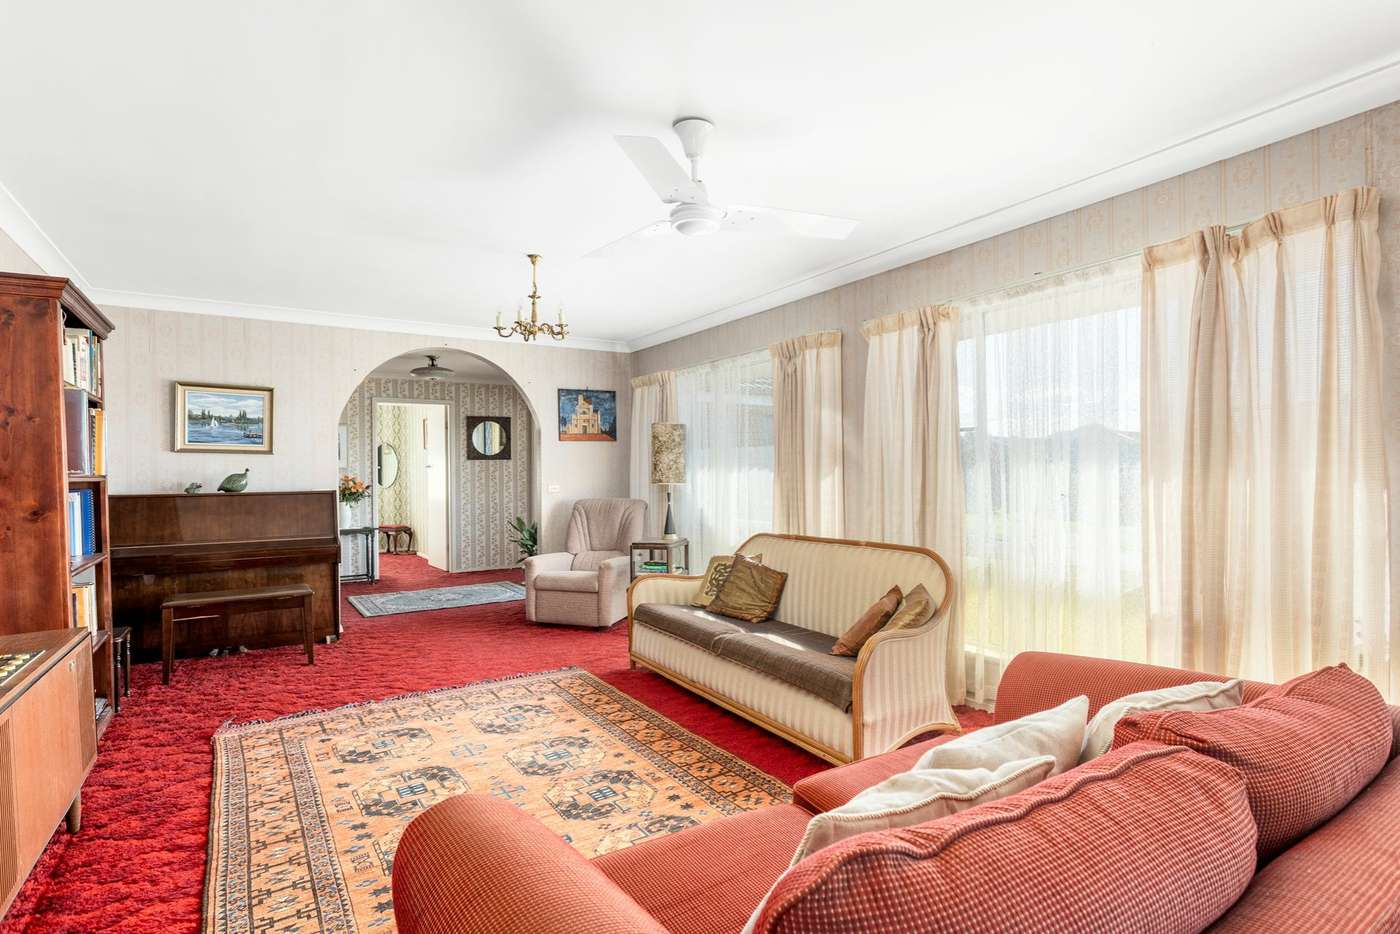 Seventh view of Homely house listing, 7 Wingham Circuit, Wingham NSW 2429